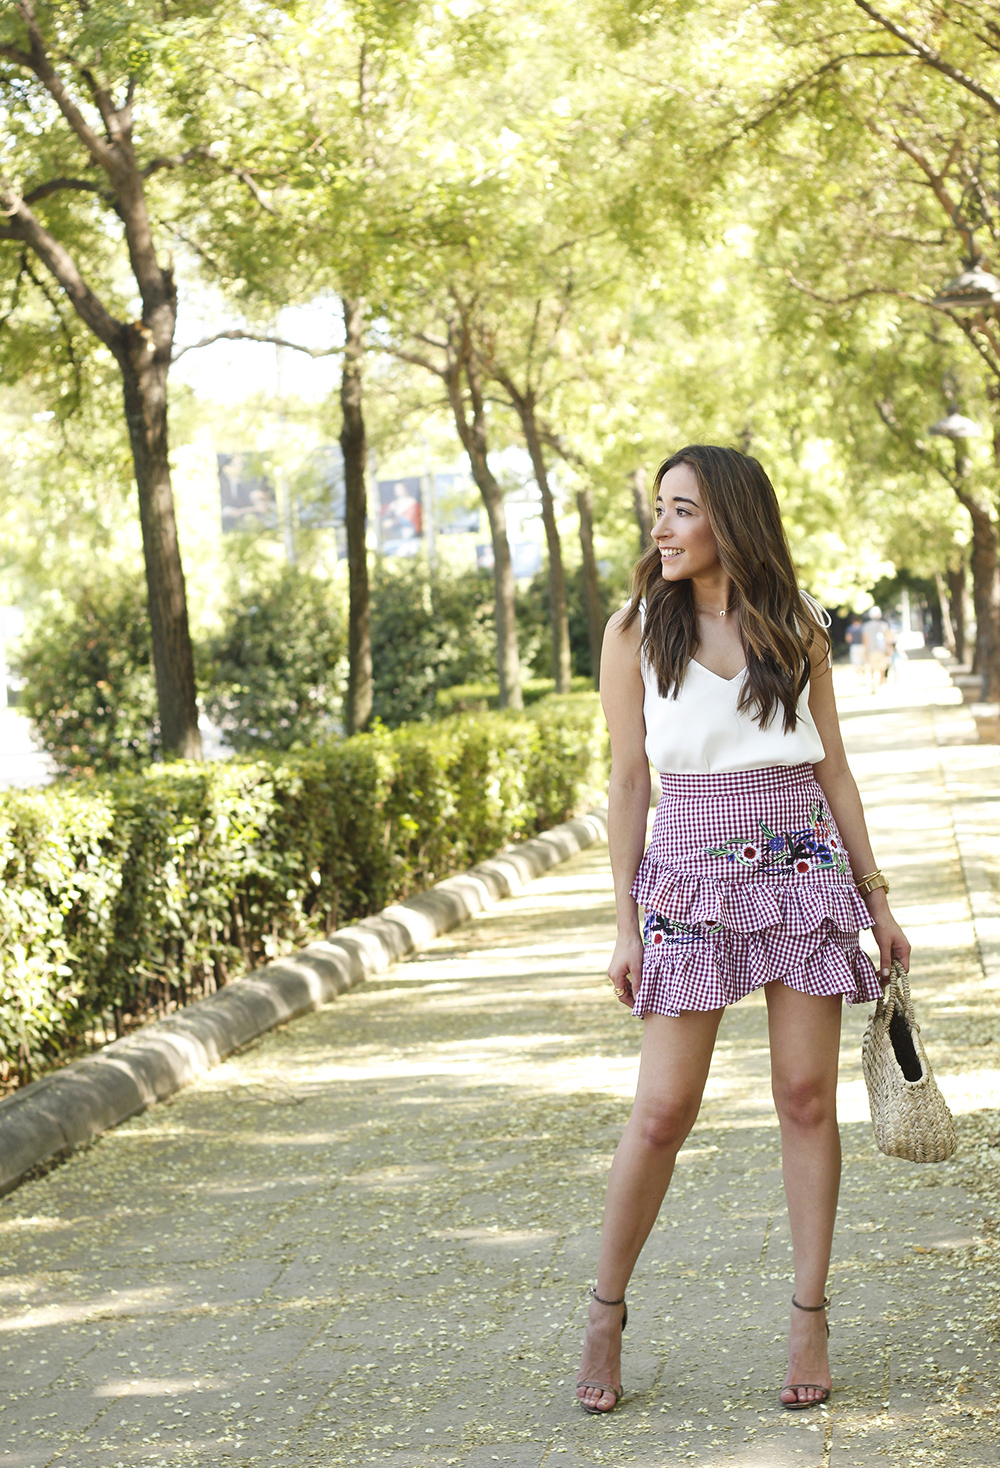 Vichy skirt with embroidered flowers rafia bag heels summer outfit style04